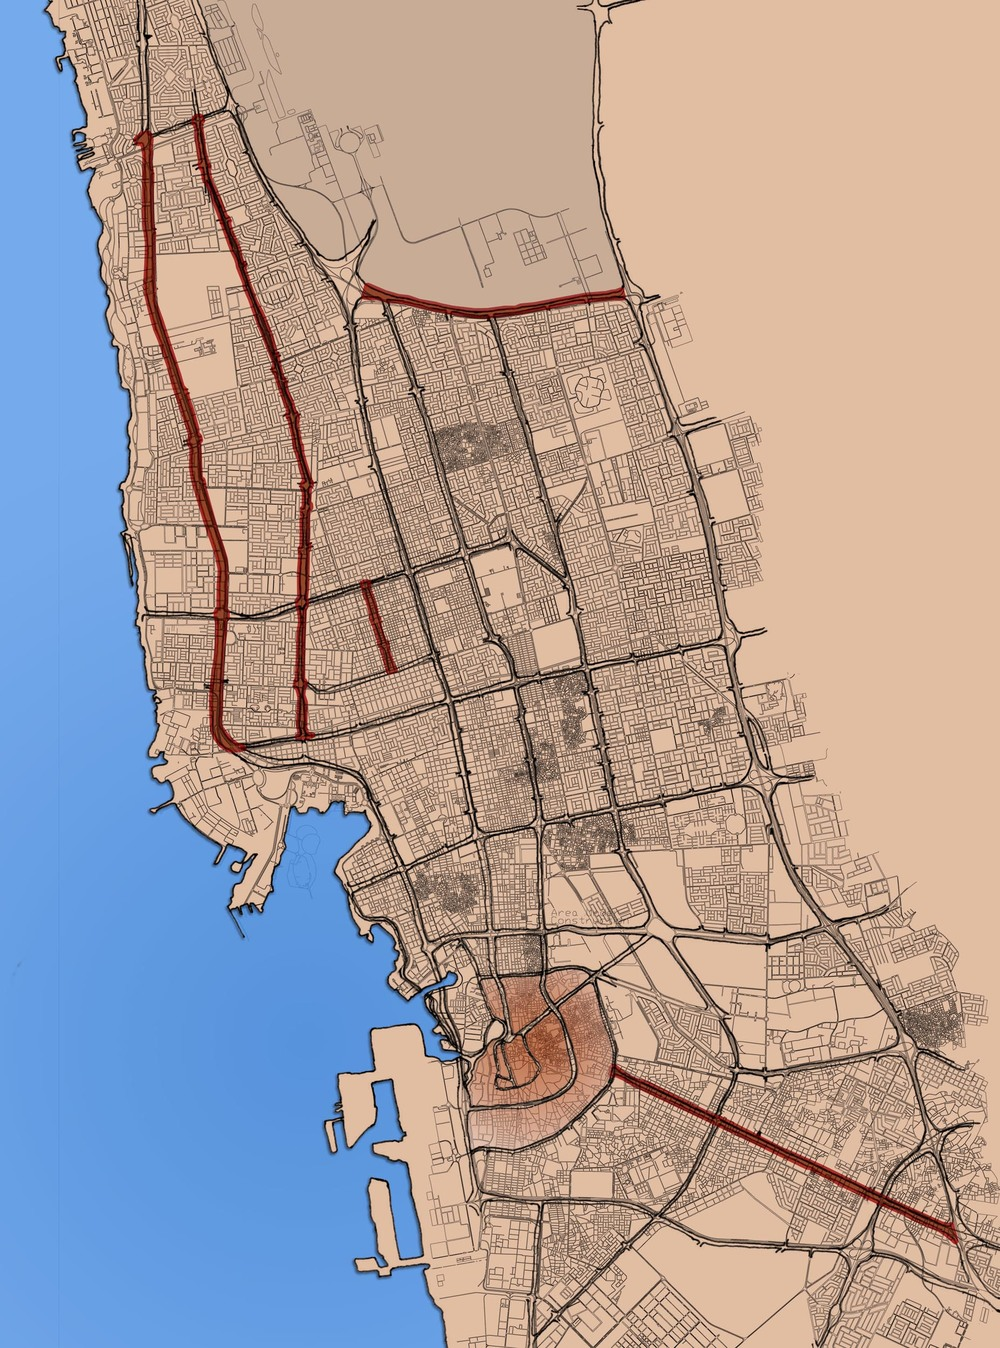 Map of the 44 km of streets studied